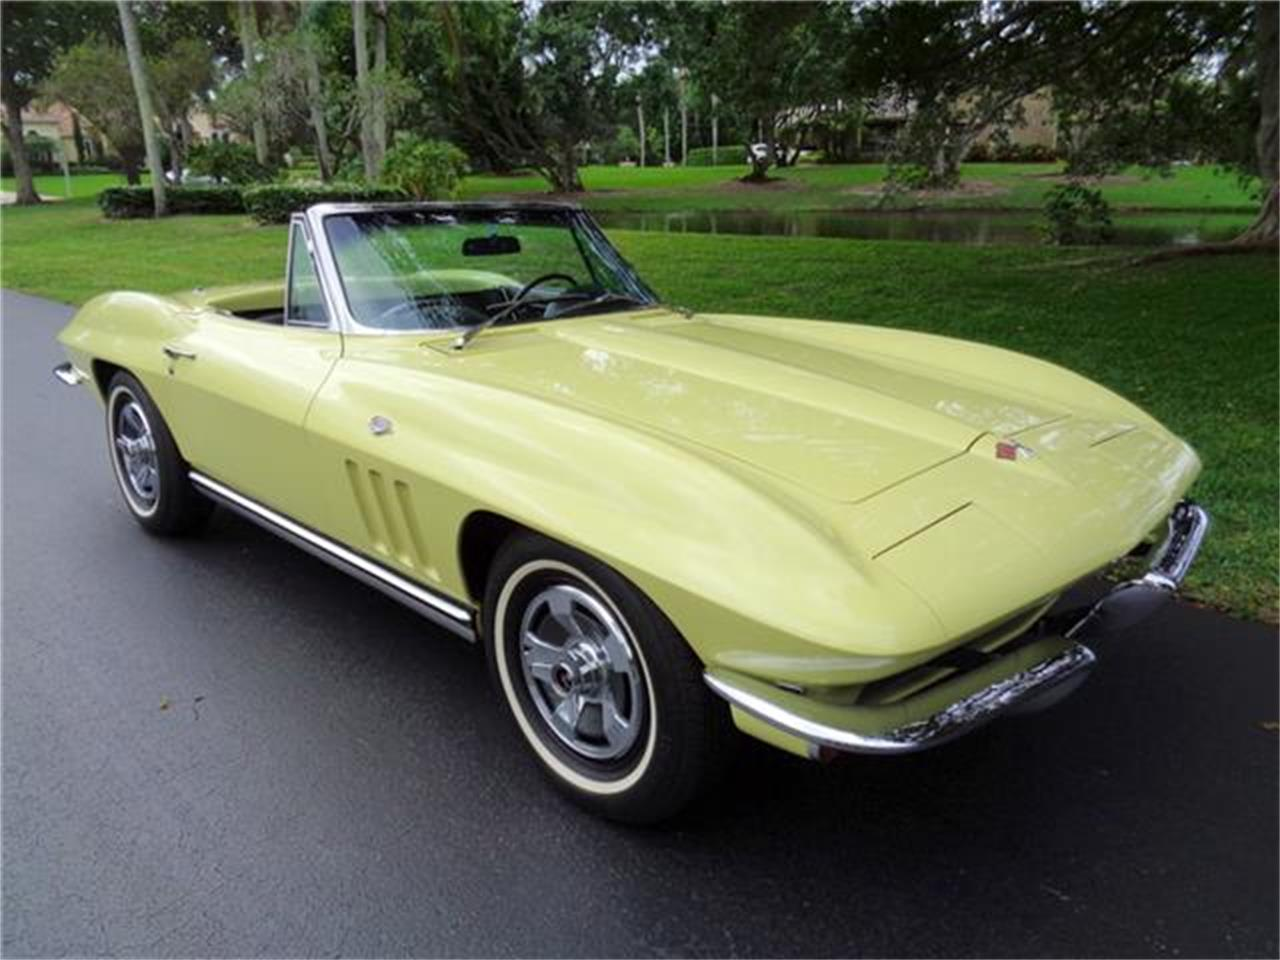 Large Picture of Classic '65 Corvette - $59,999.00 Offered by a Private Seller - Q216